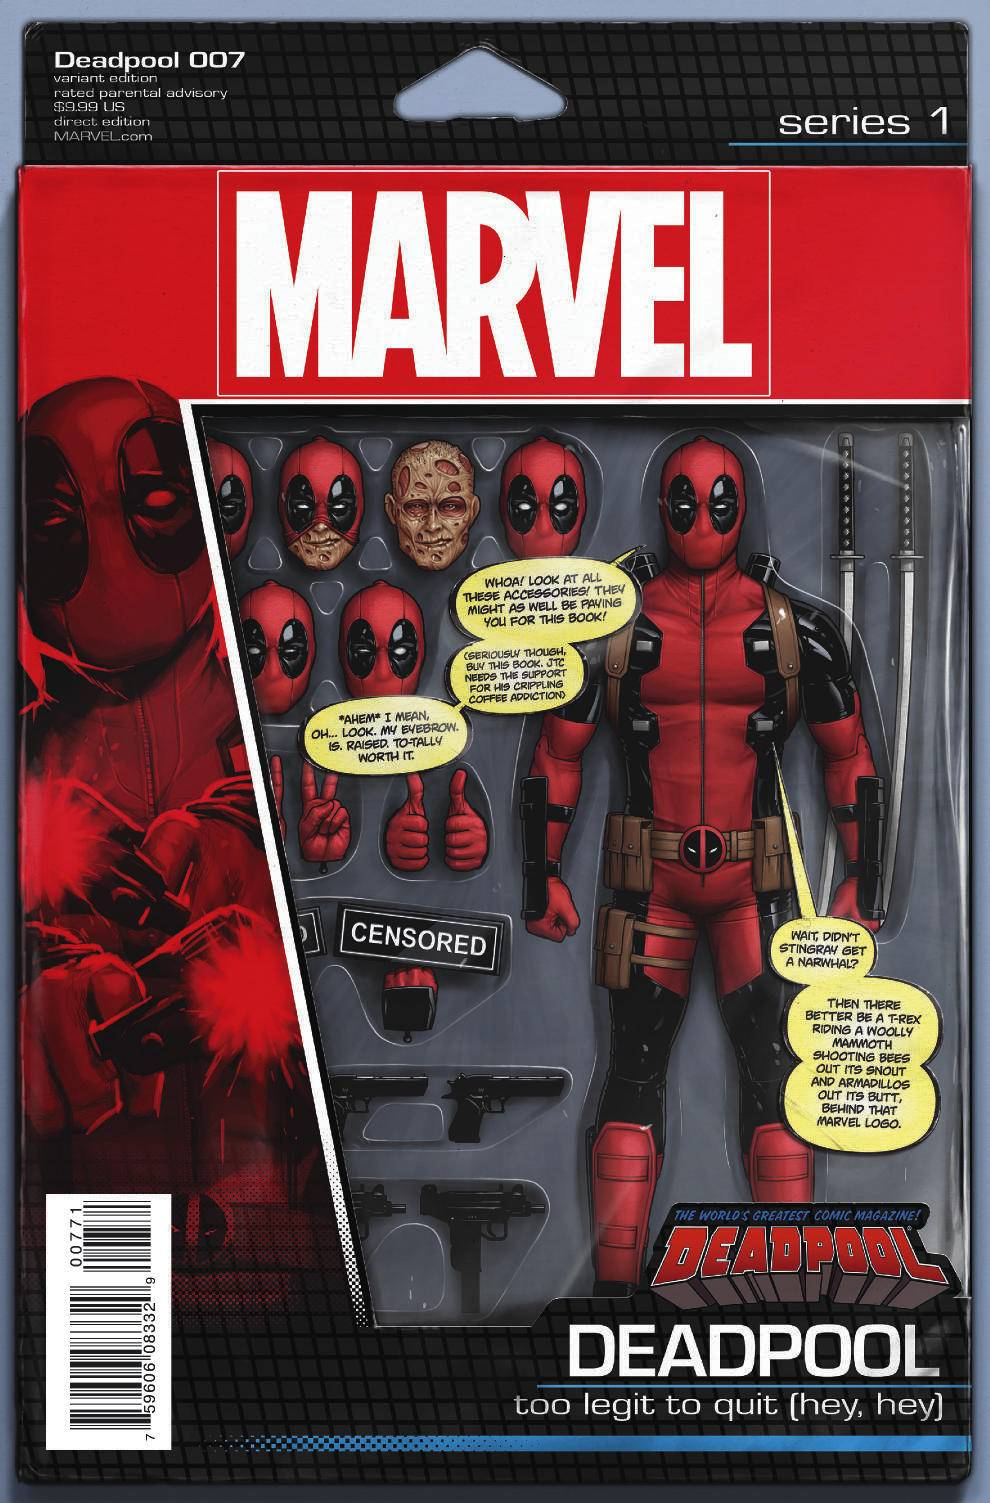 Comics and Their Cool Action Figure Variant Covers | The ...